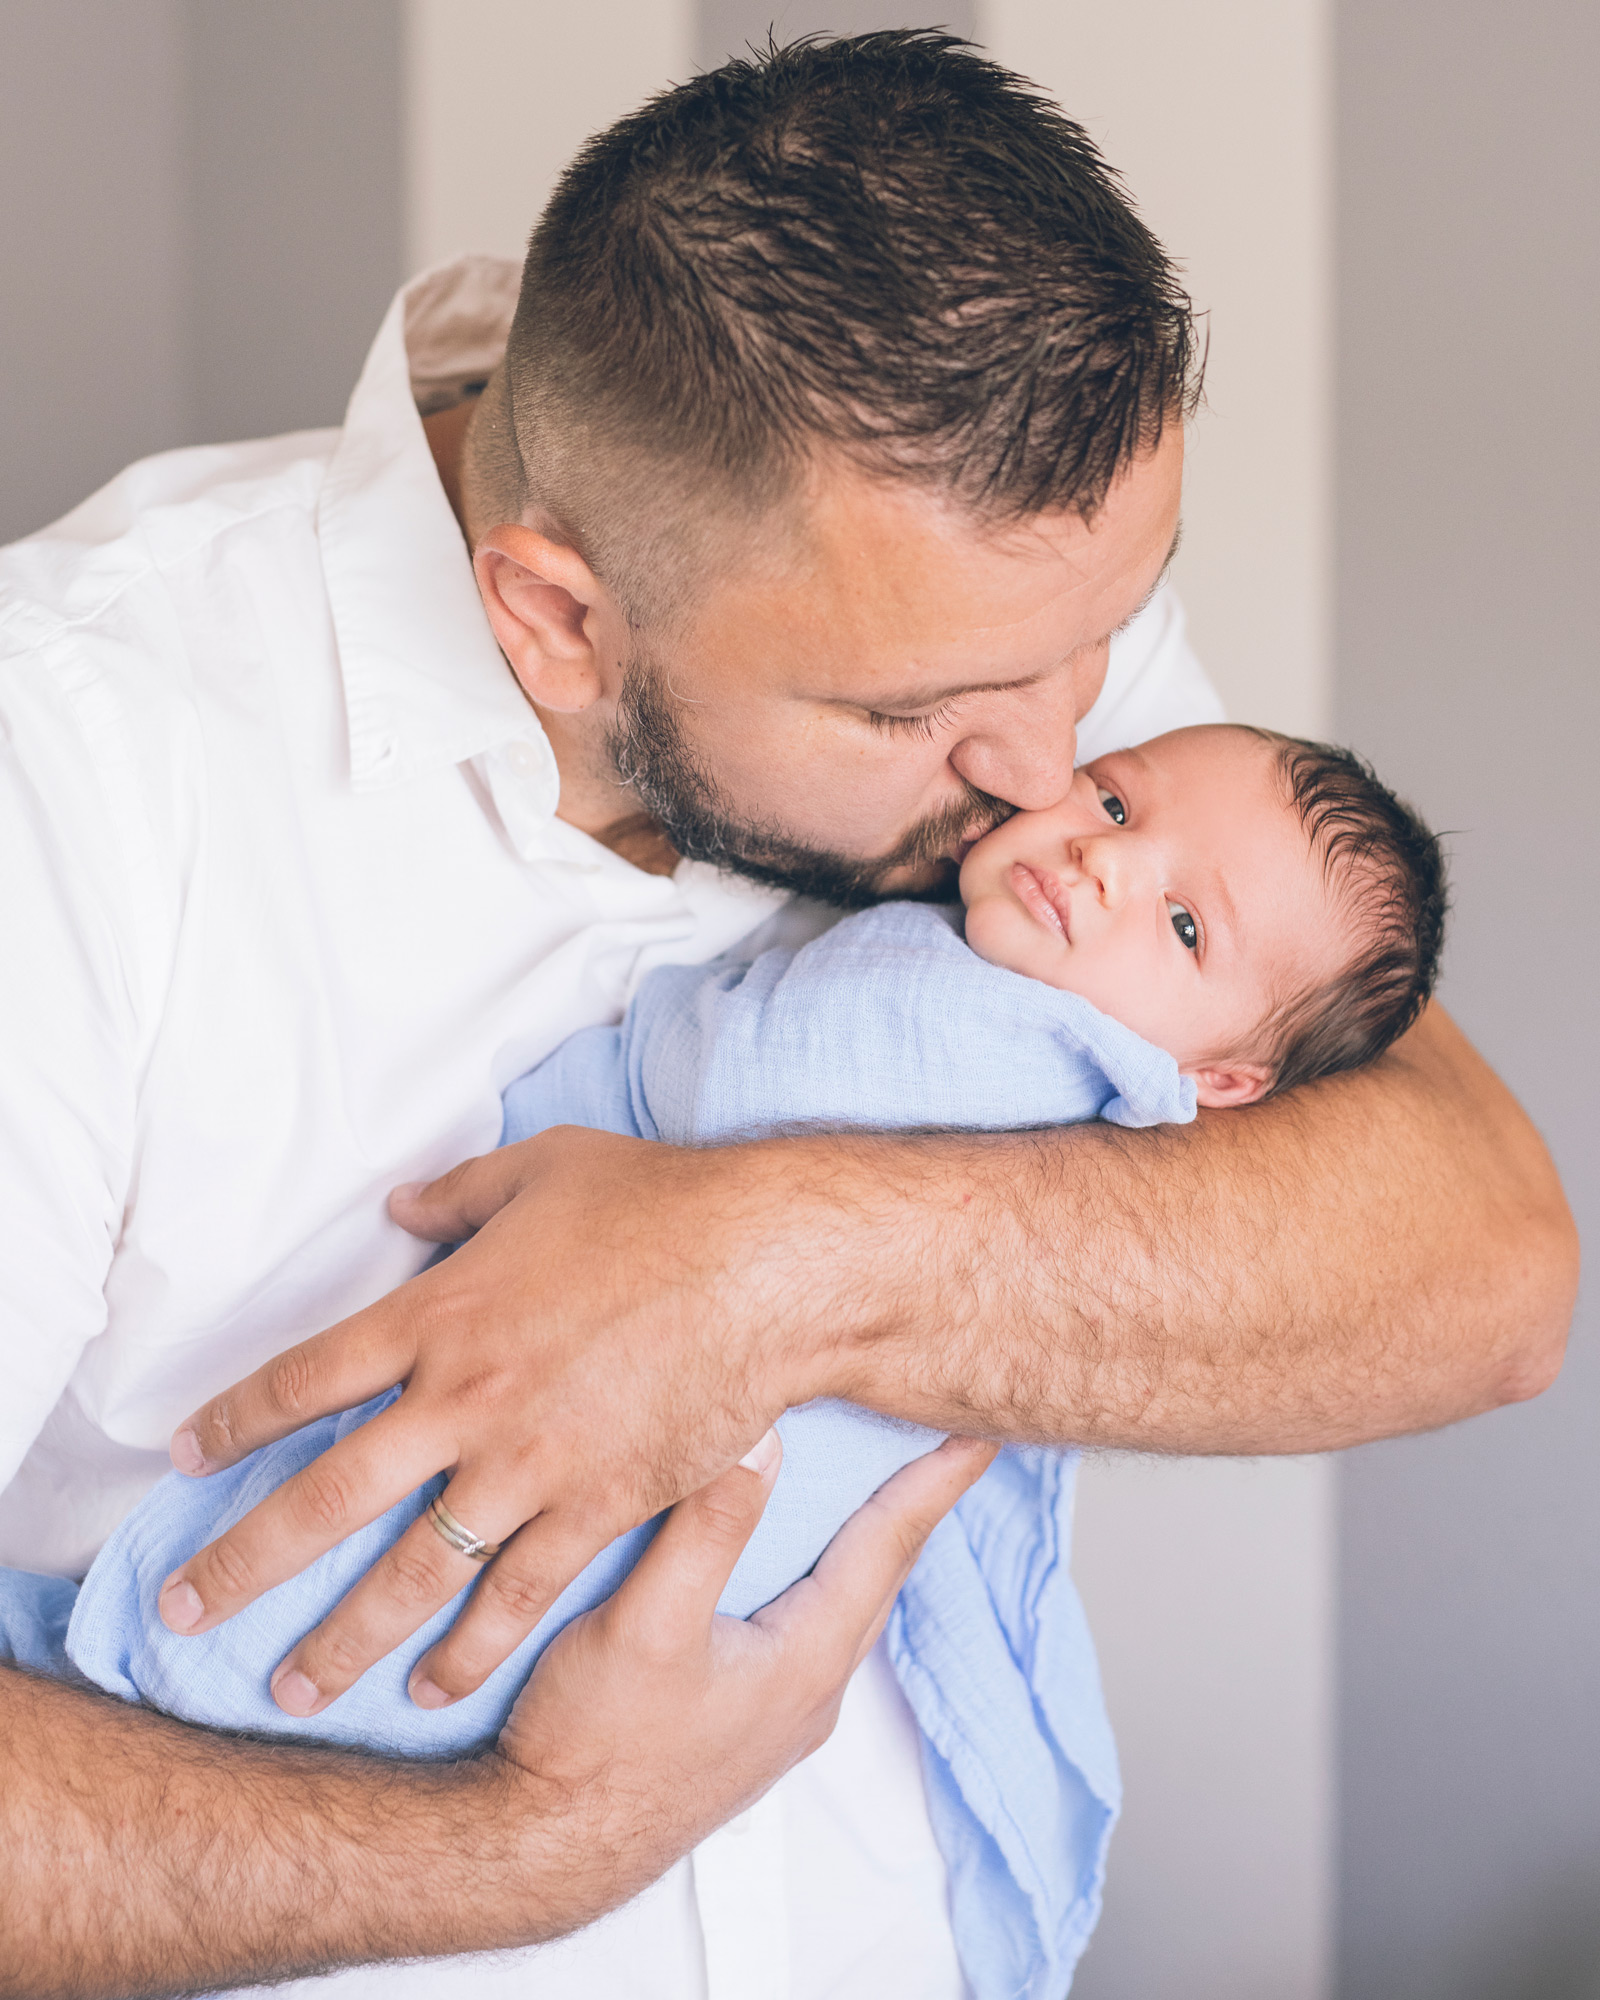 father-holding-and-kissing-his-newborn-baby-boy.jpg